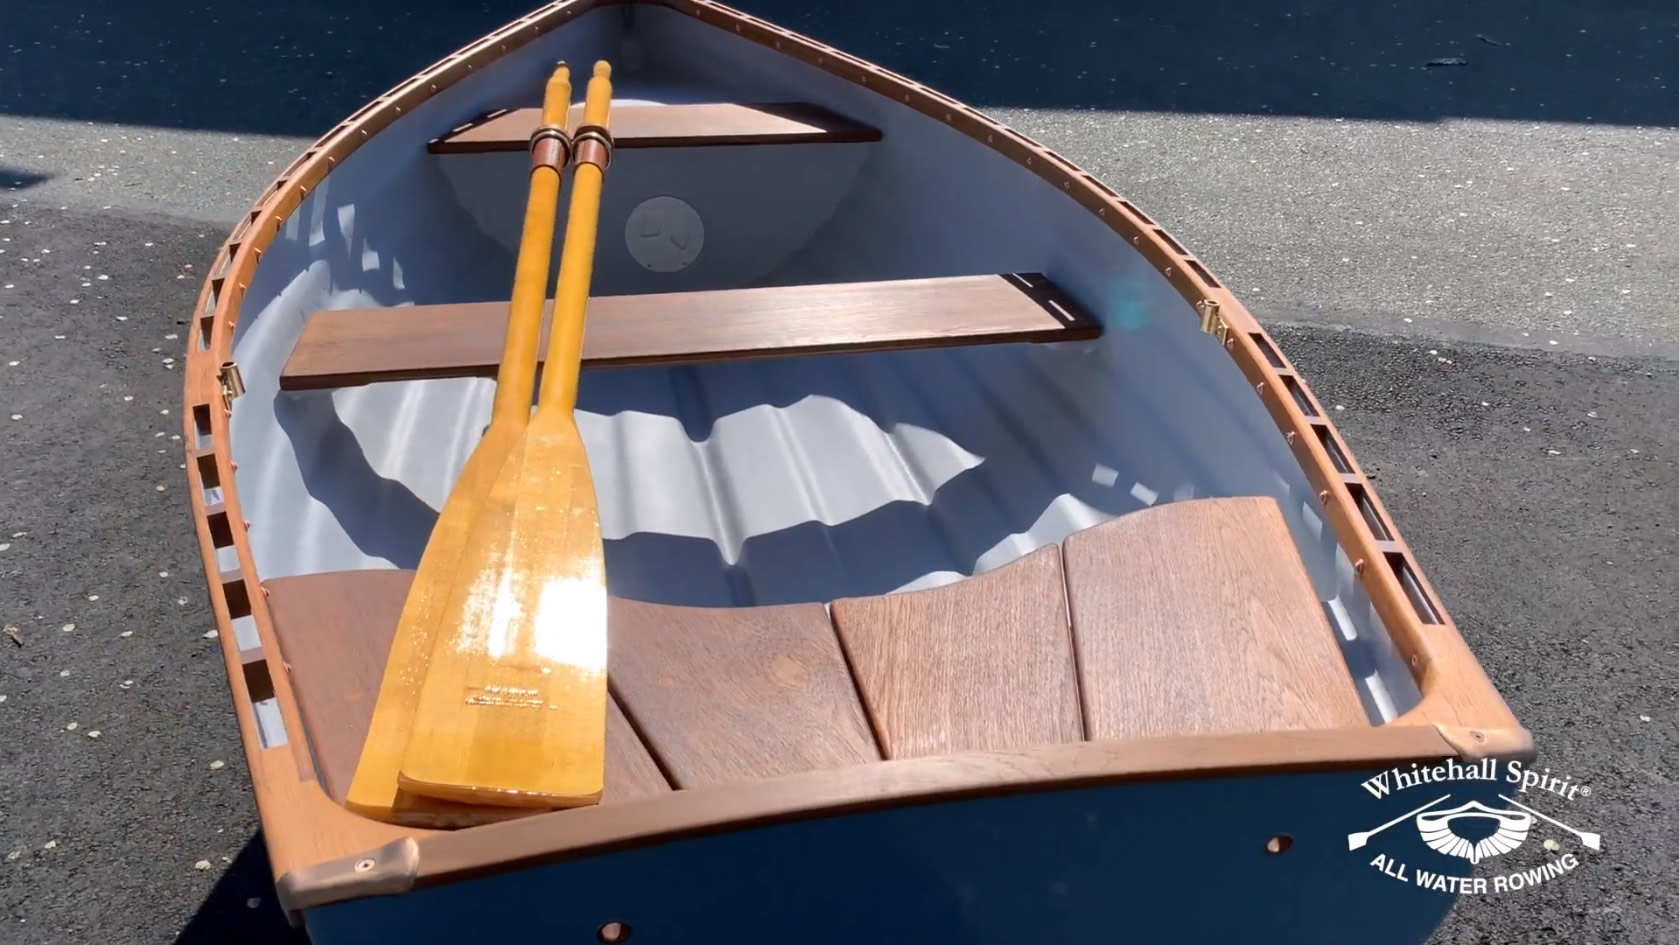 minto-tender-dinghy-rowboat-whitehall-rowing-and-sail